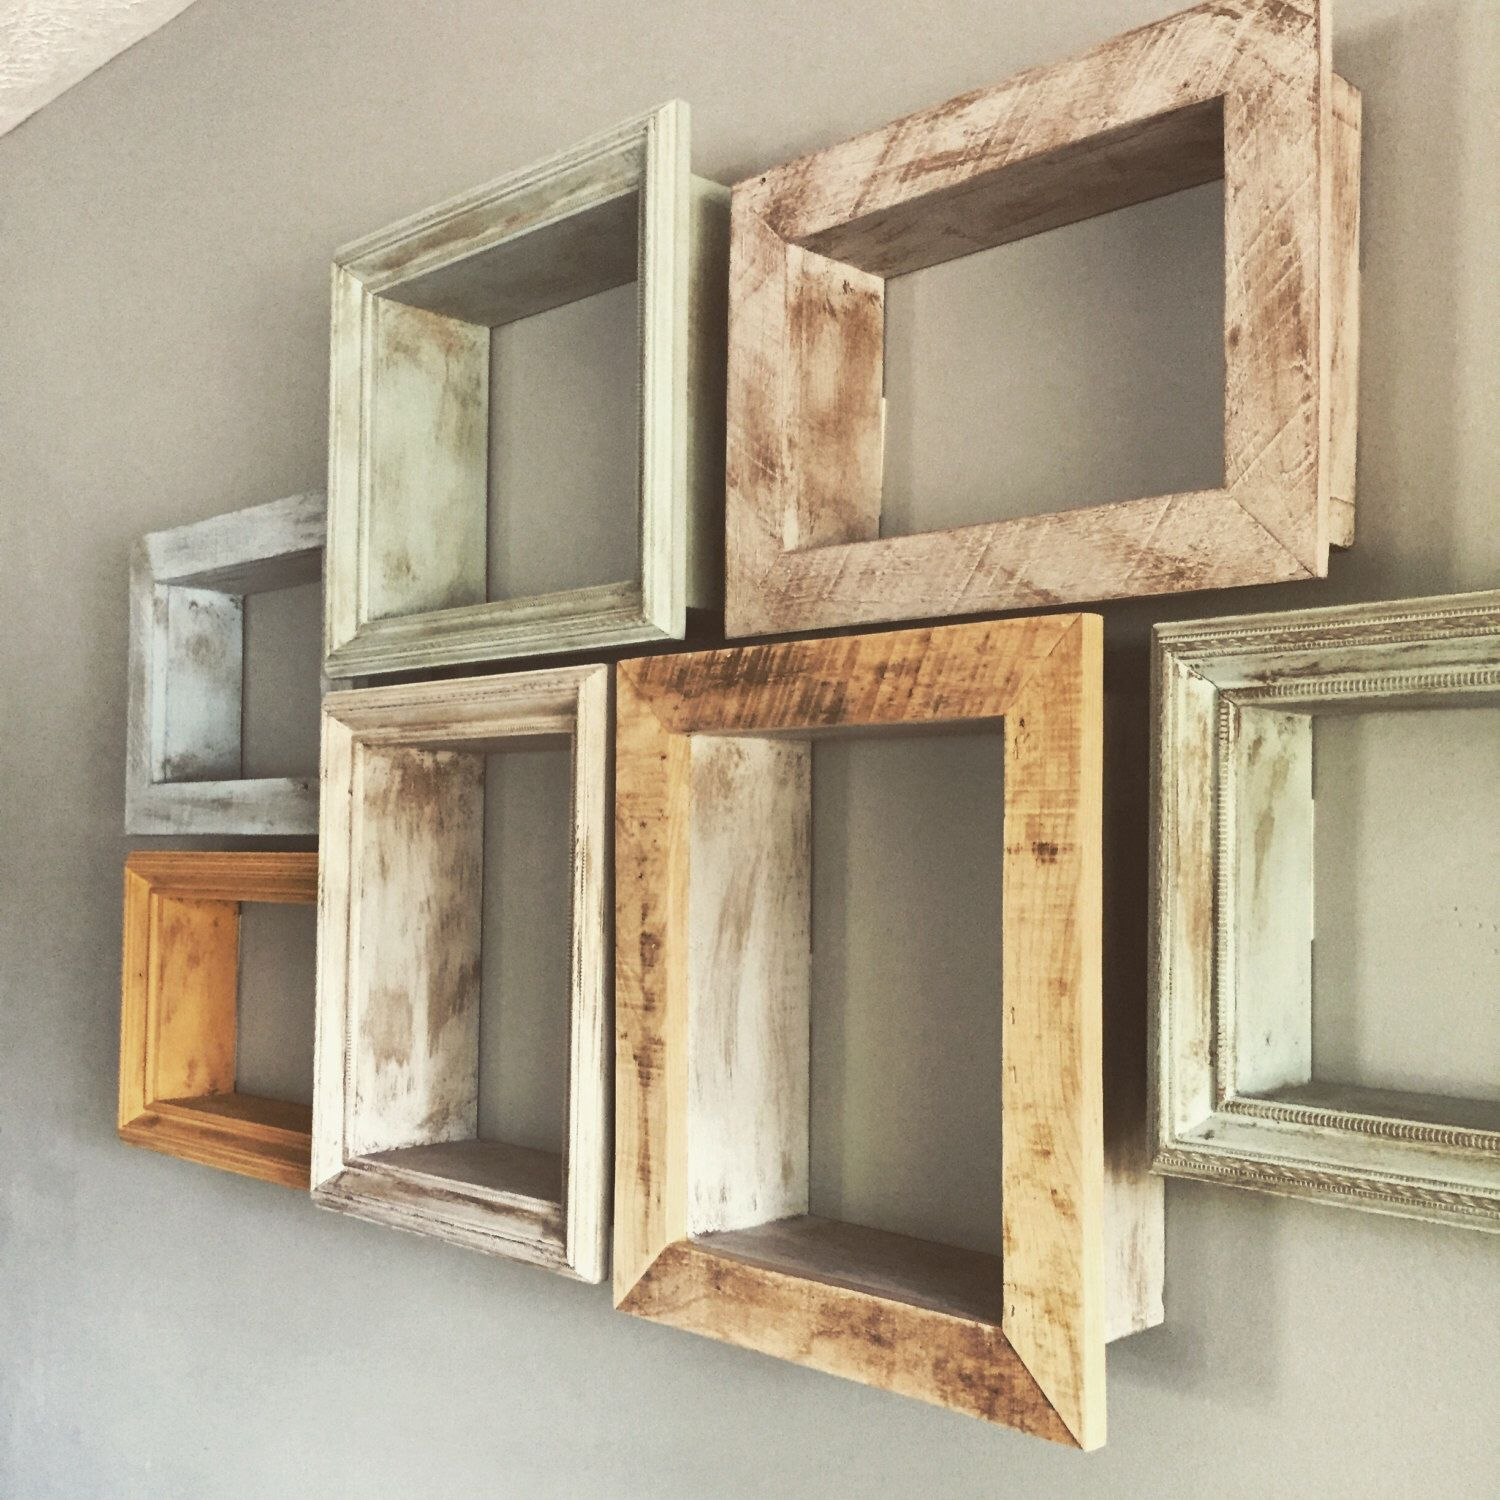 Distressed Shadow Box Shelf By Knoxwoodcreations On Etsy Https